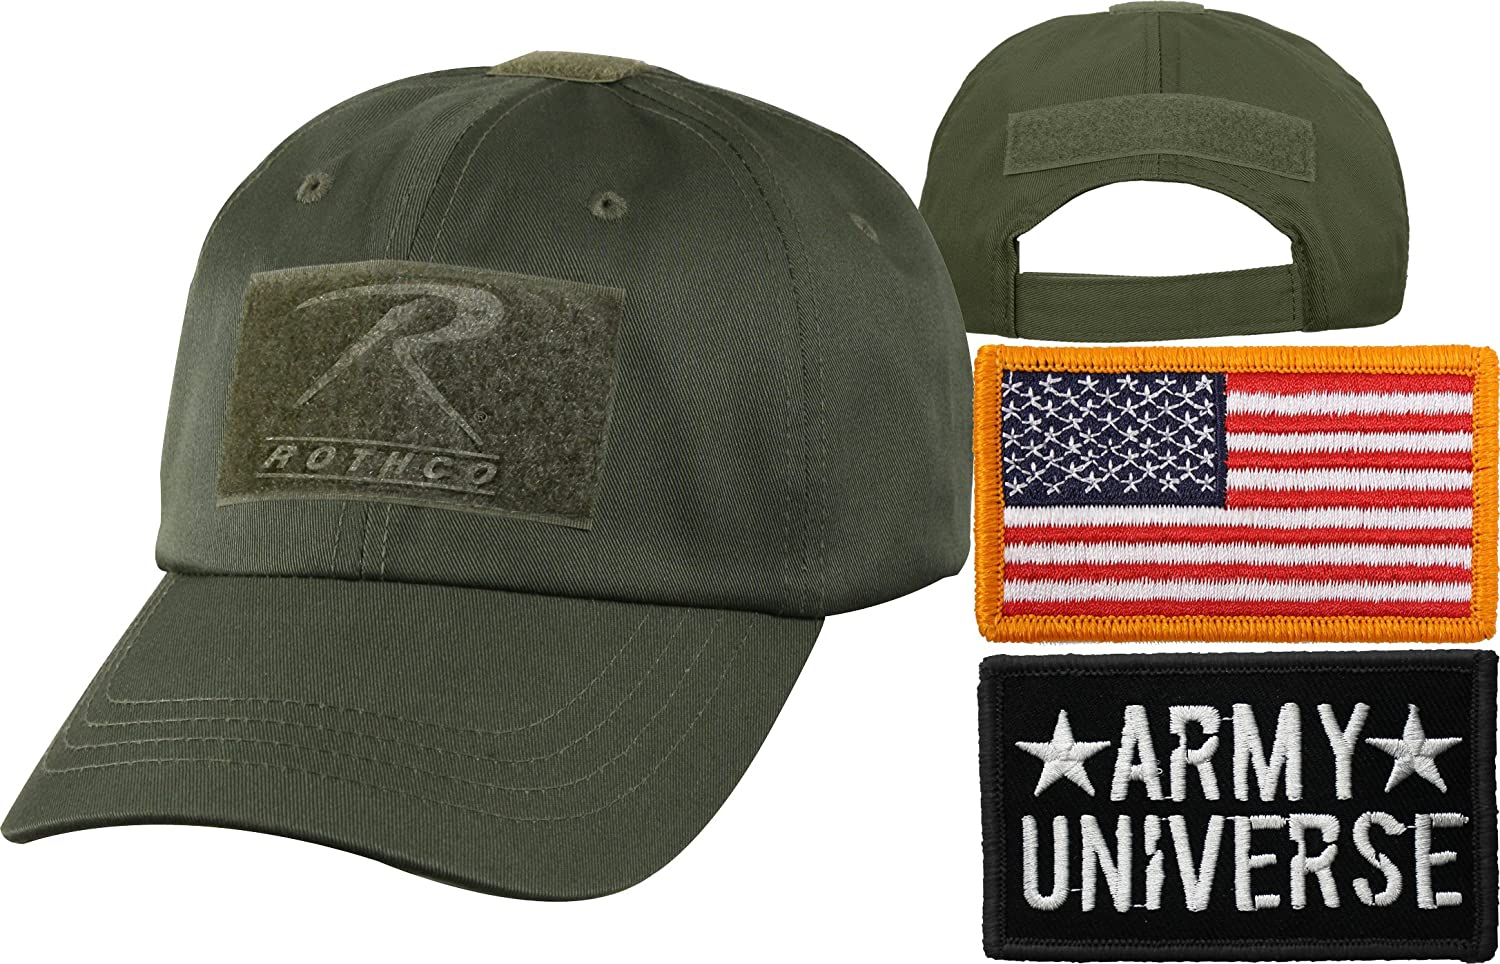 14025b6a9c5 Amazon.com  Olive Drab Tactical Operators Cap + Army Universe Black Patch +  Foliage Green REGULAR USA Flag Patch  Military Apparel Accessories  Clothing